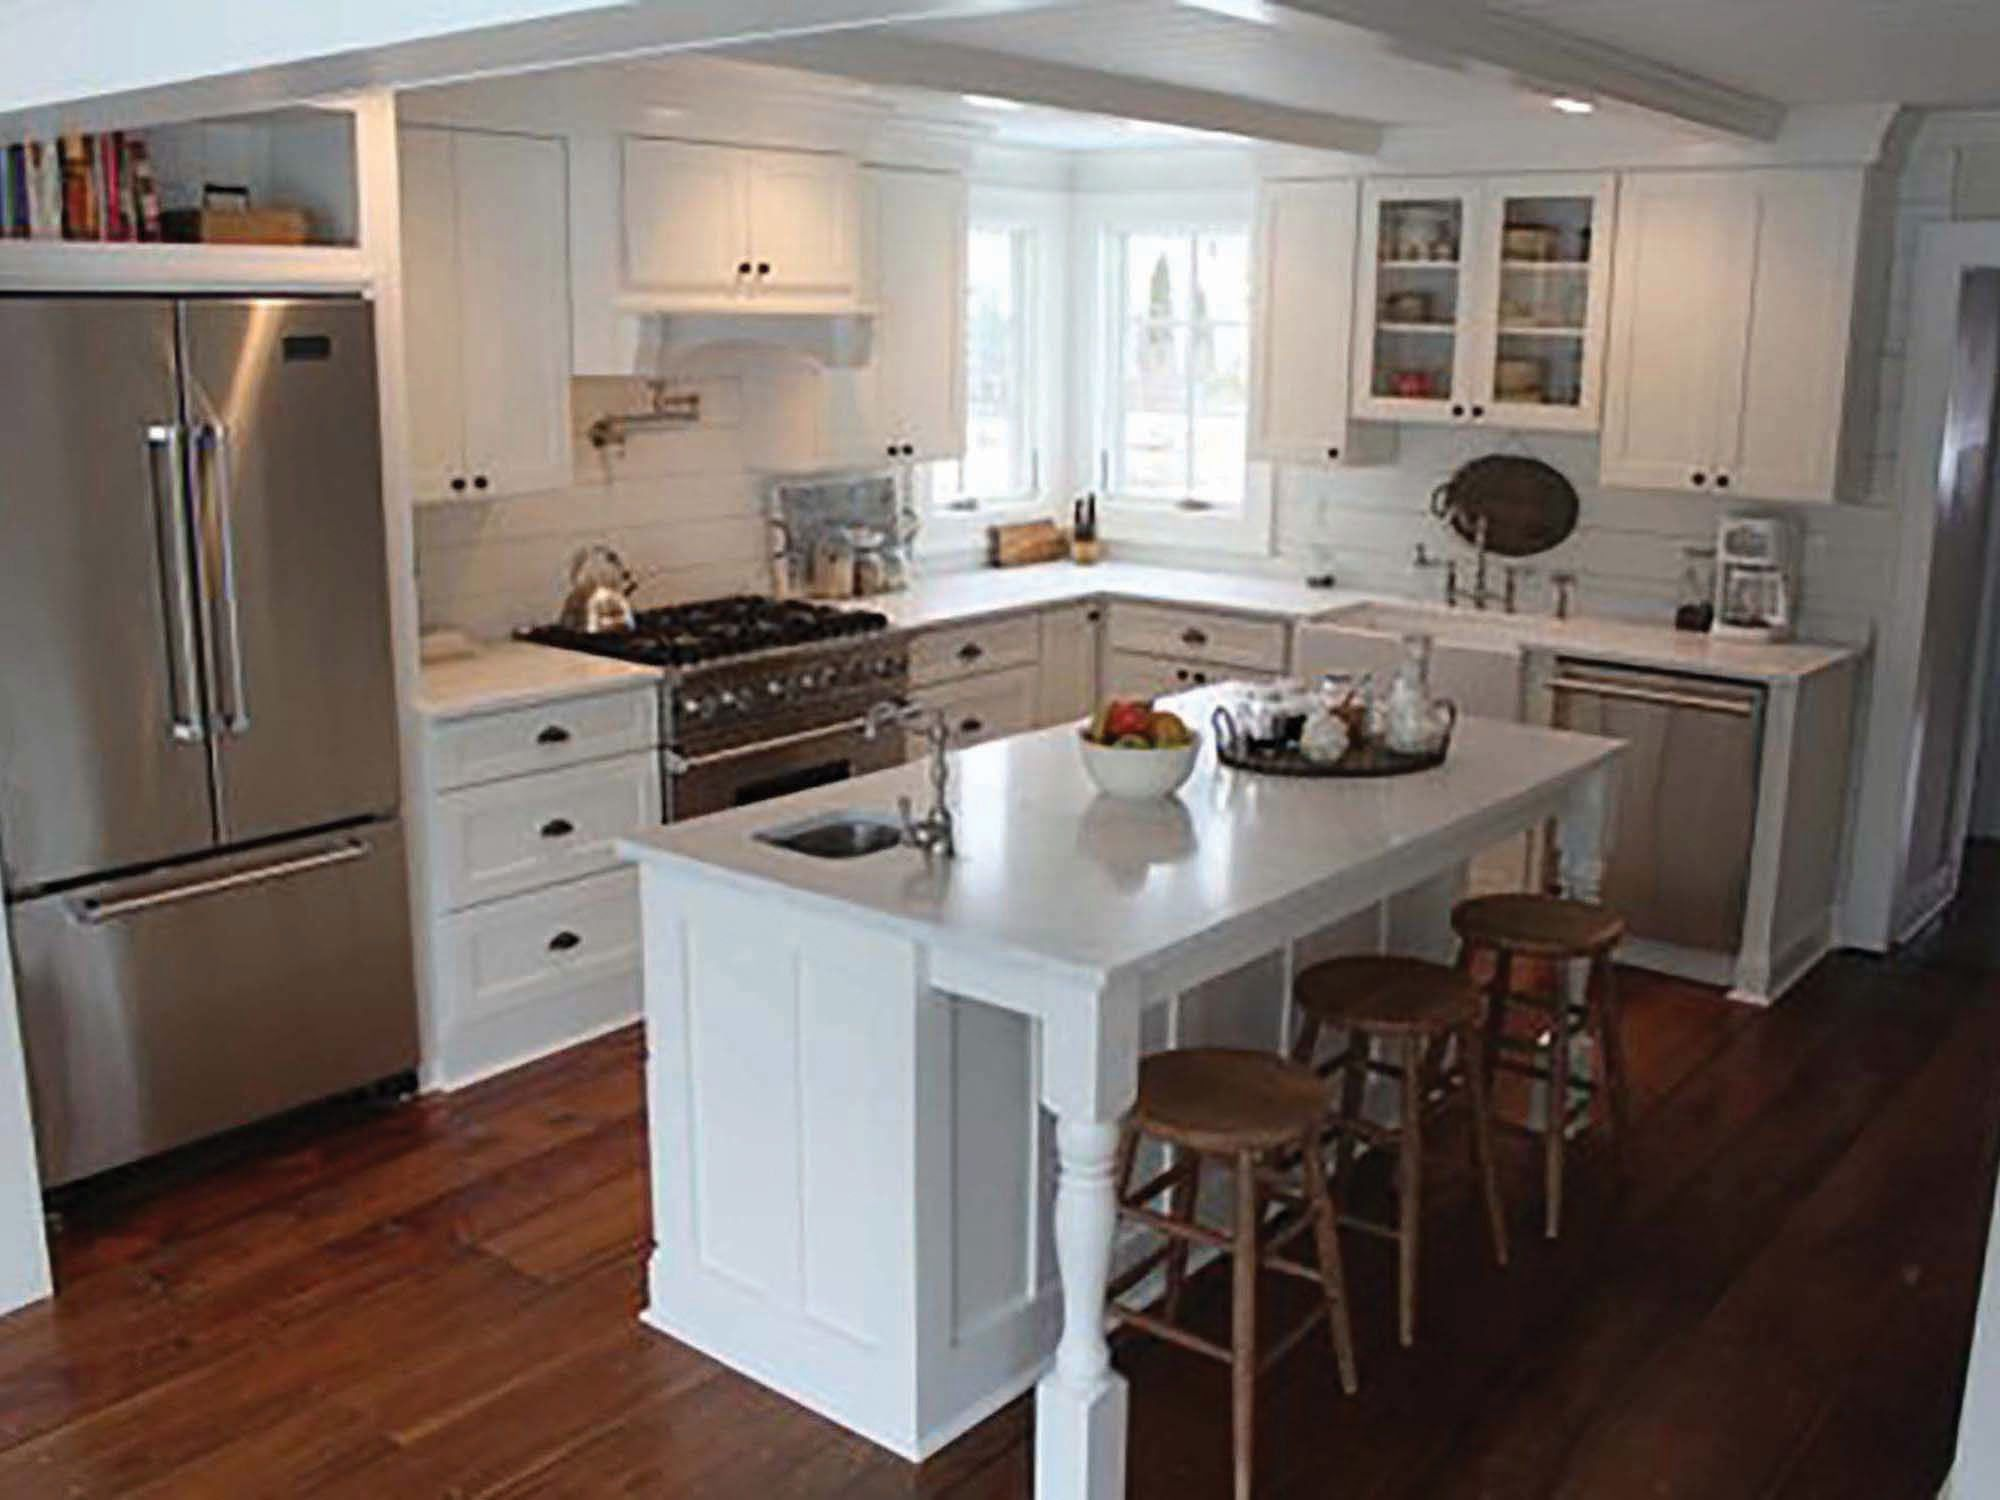 Guildord Connecticut Kitchen Renovation Features Cliqstudios Dayton Painted White Cabinets